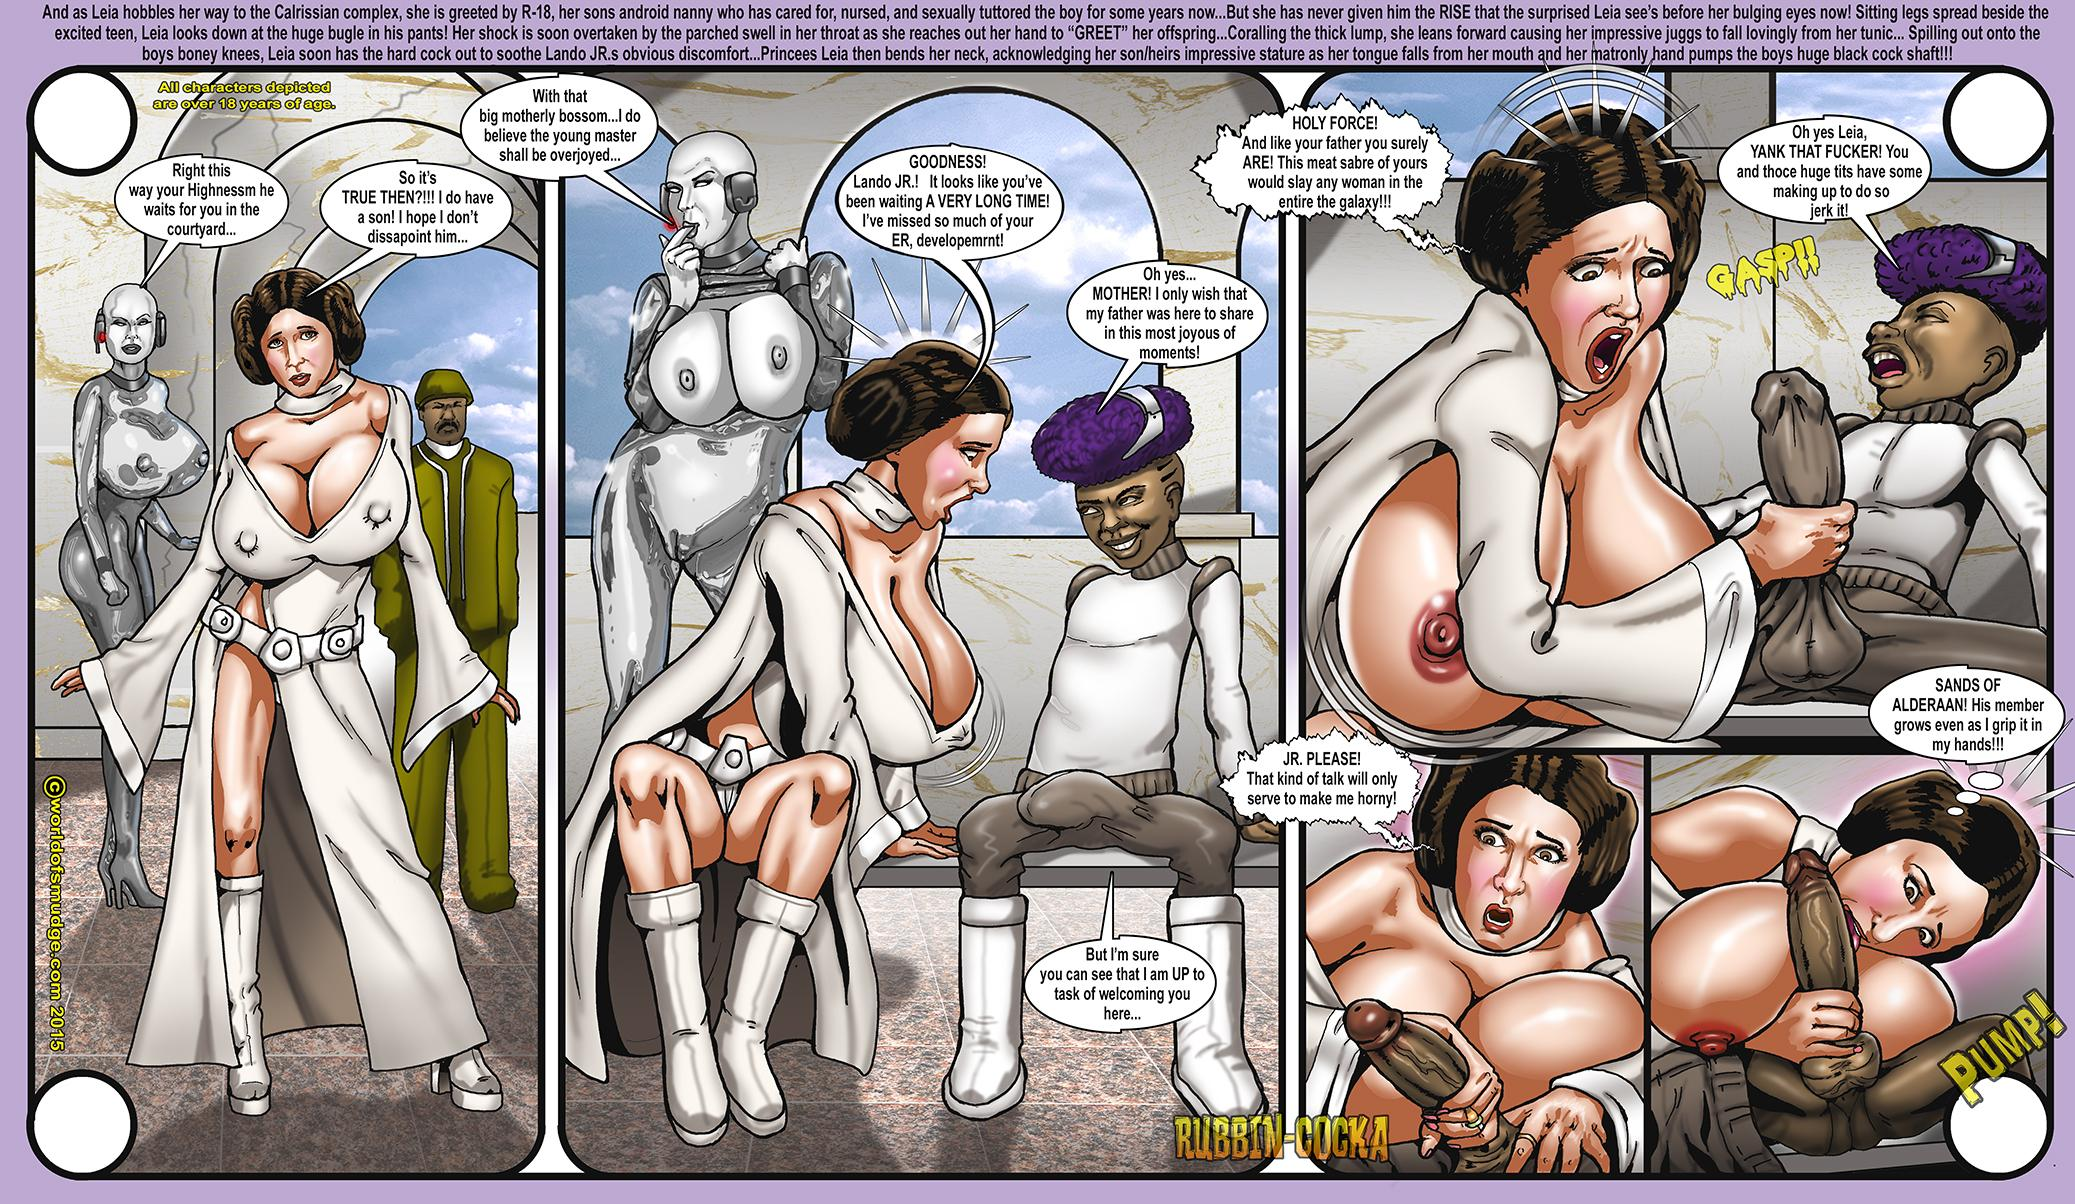 Star wars sex story erotic tube